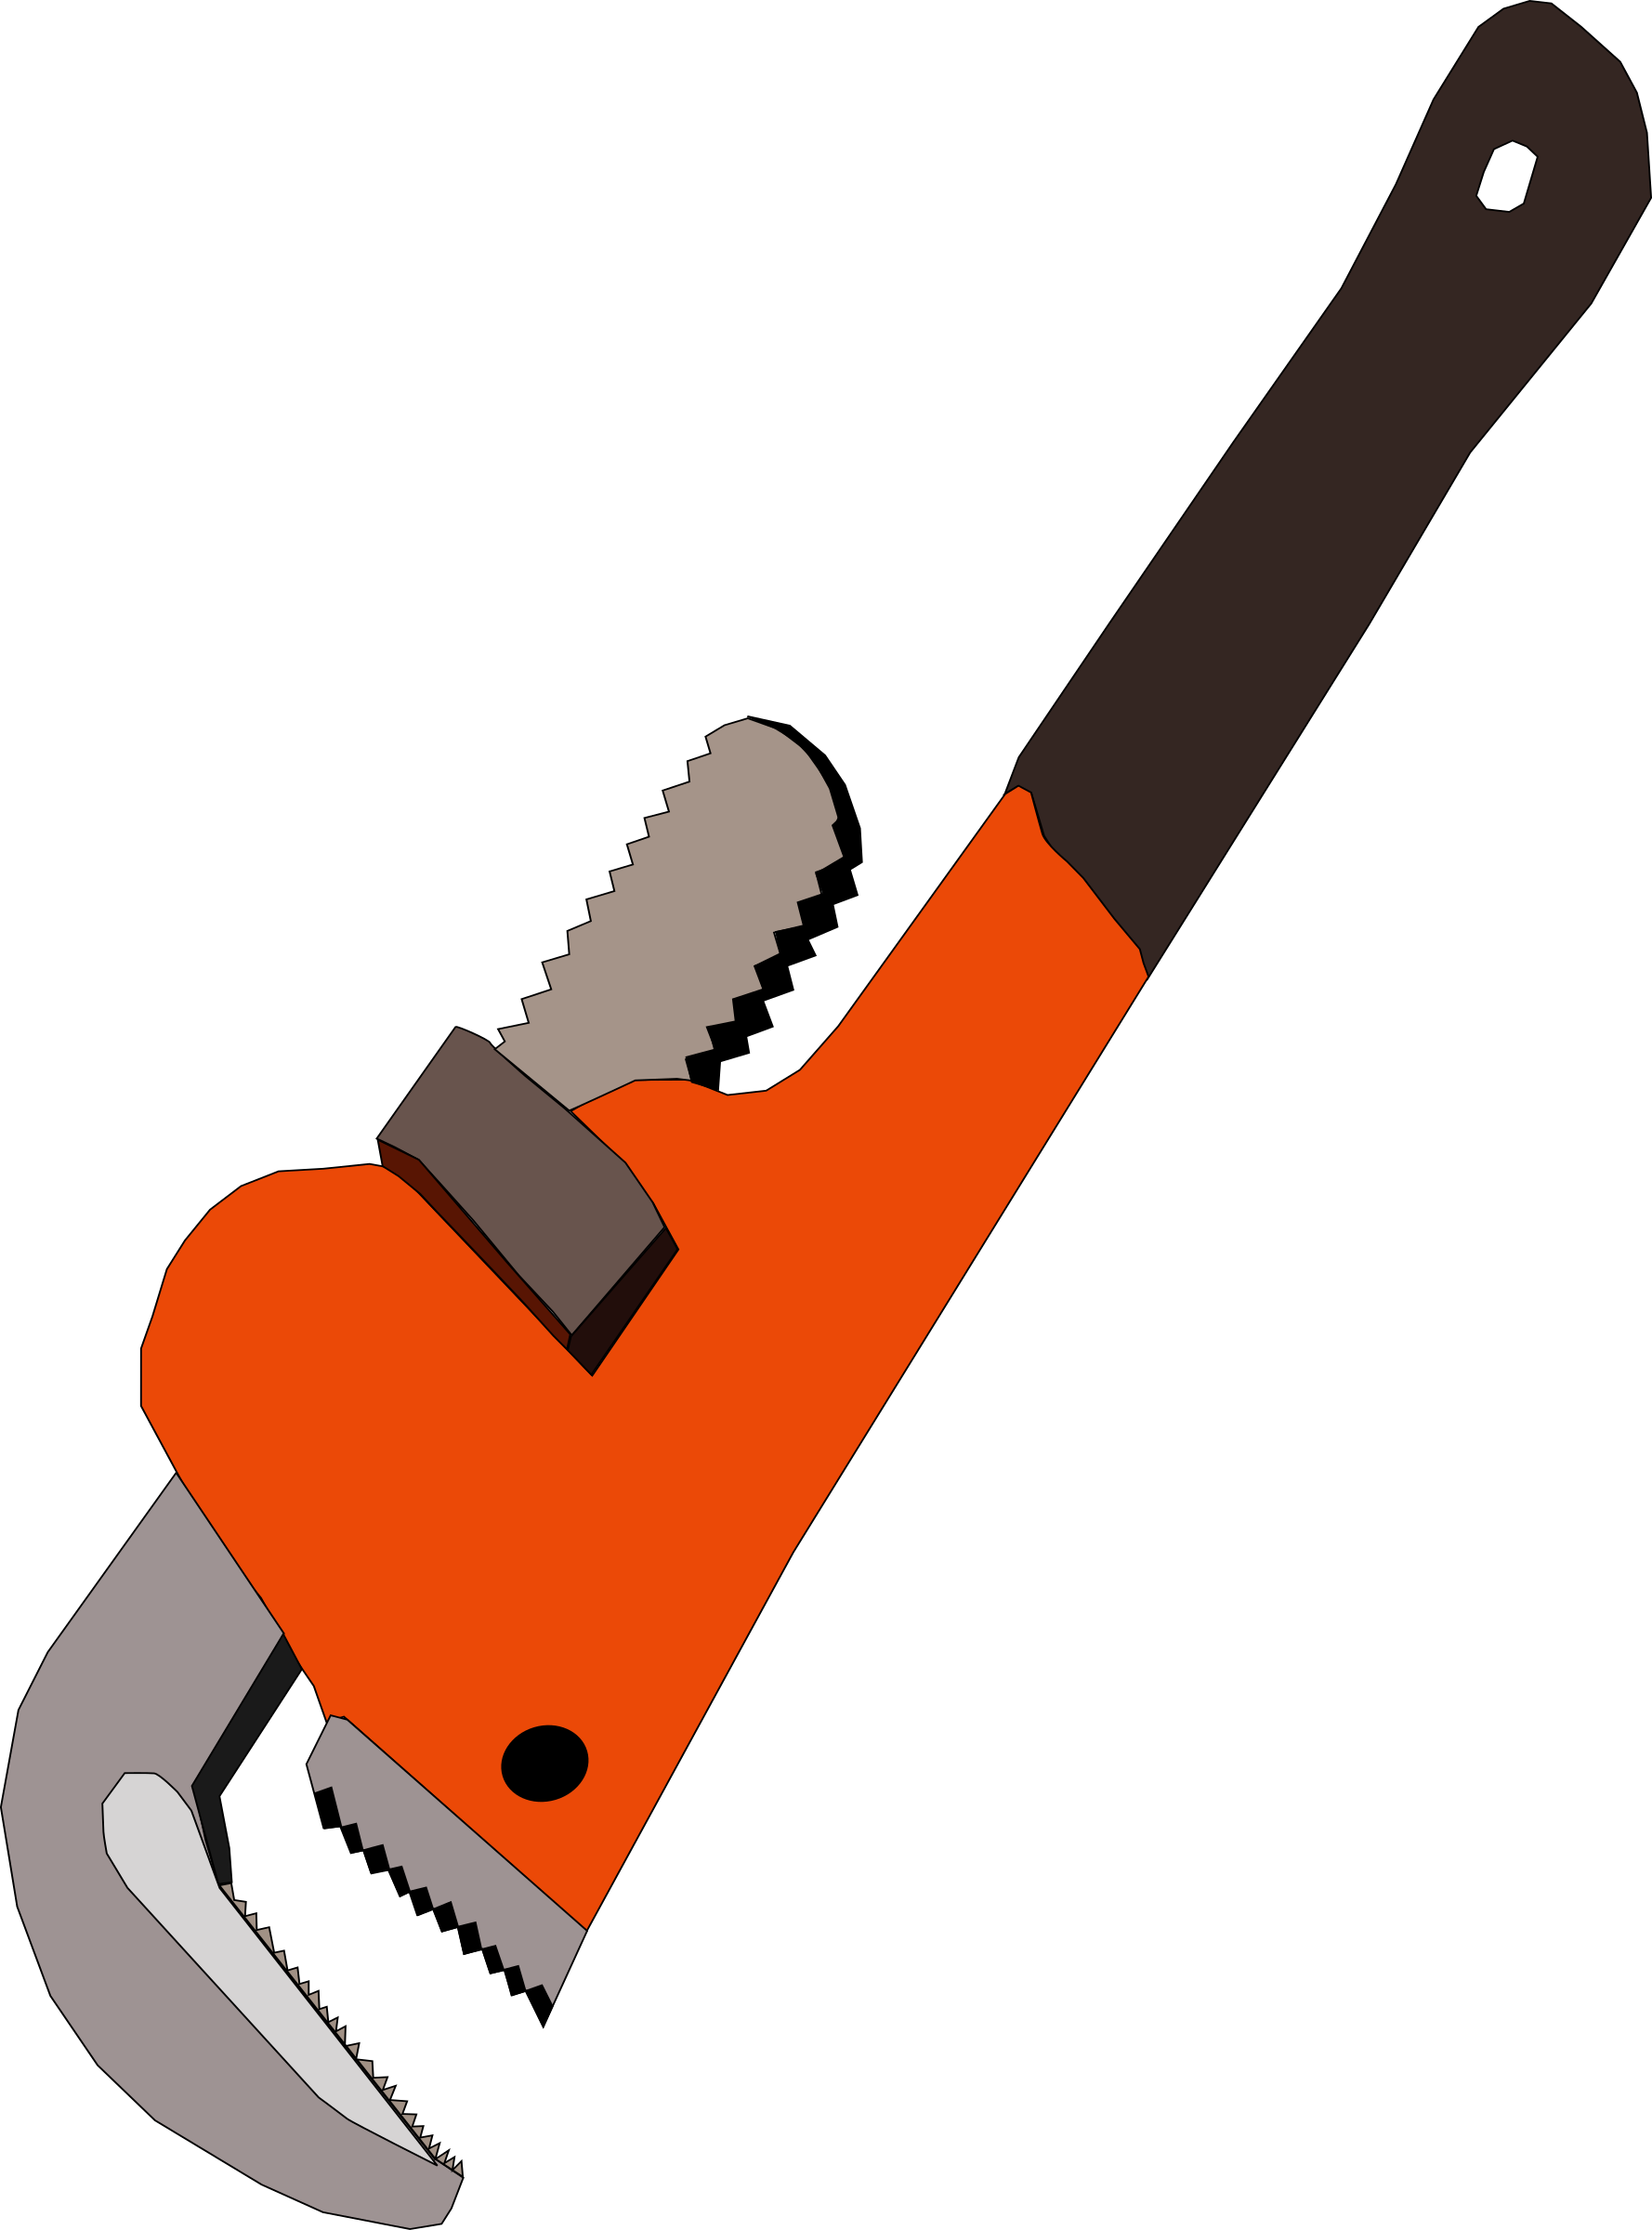 Pipe wrench by Machovka